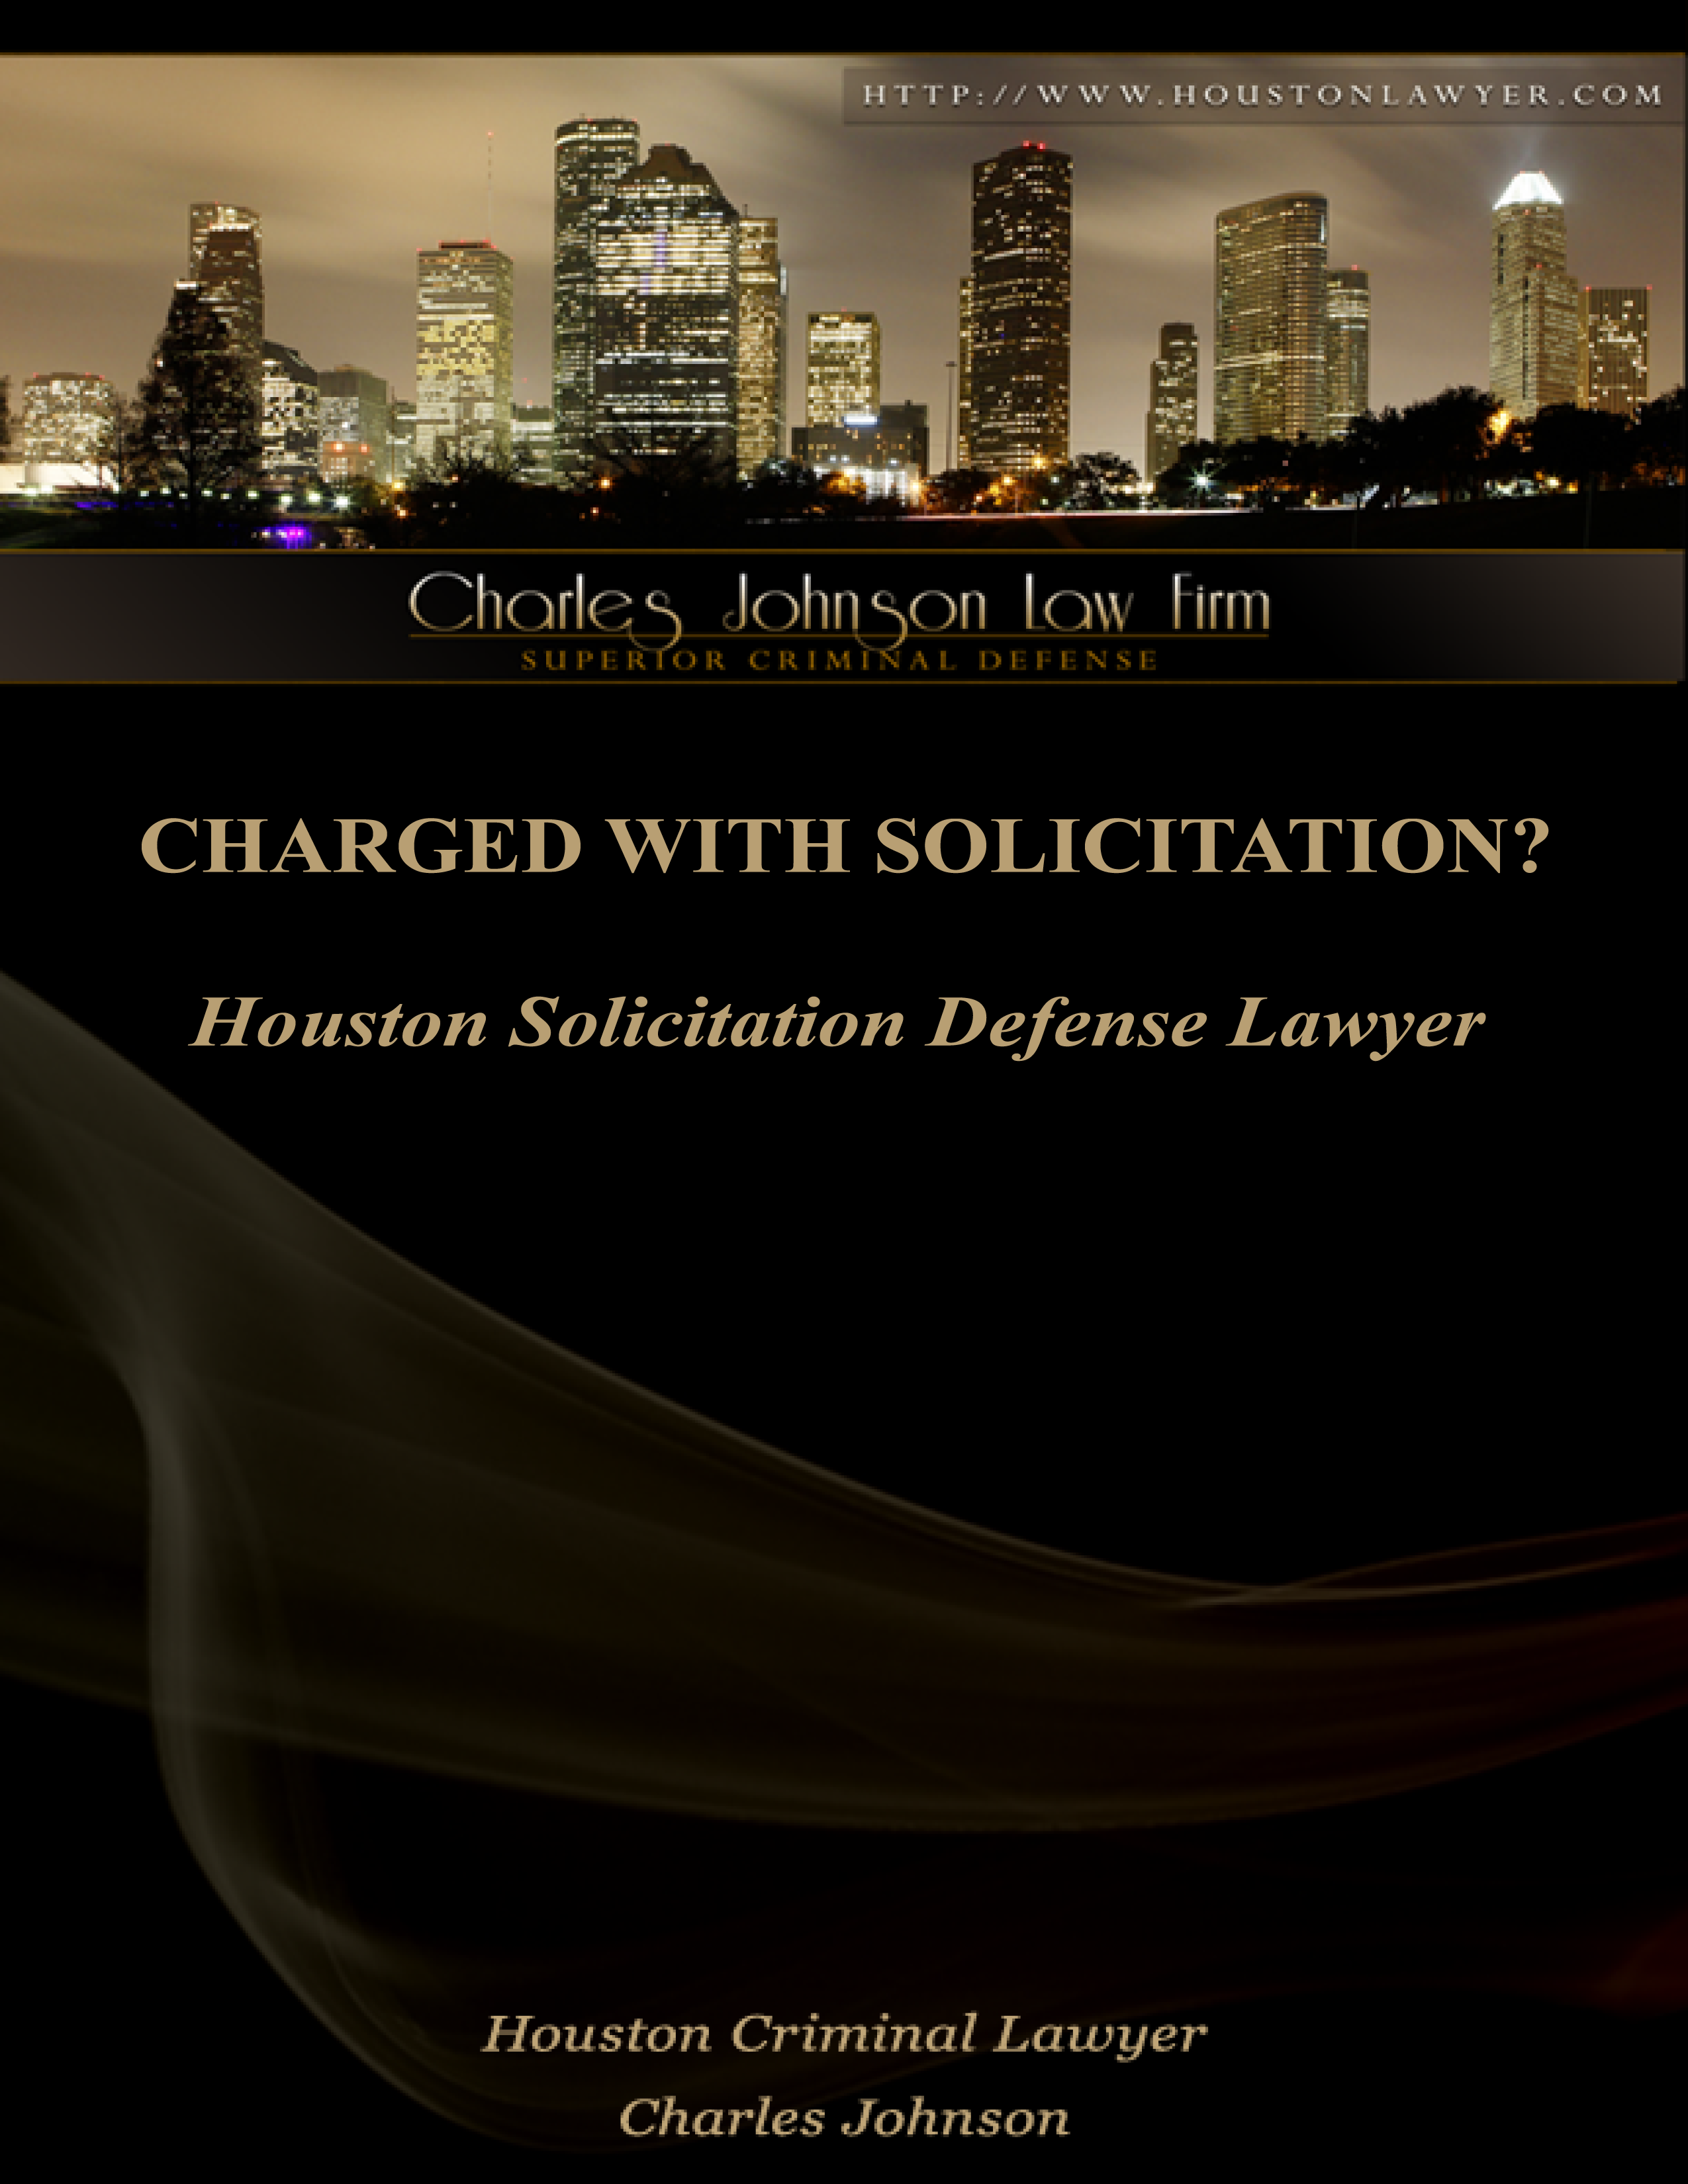 Houston Solicitation Charges Defense Lawyer: The Charles Johnson Law Firm